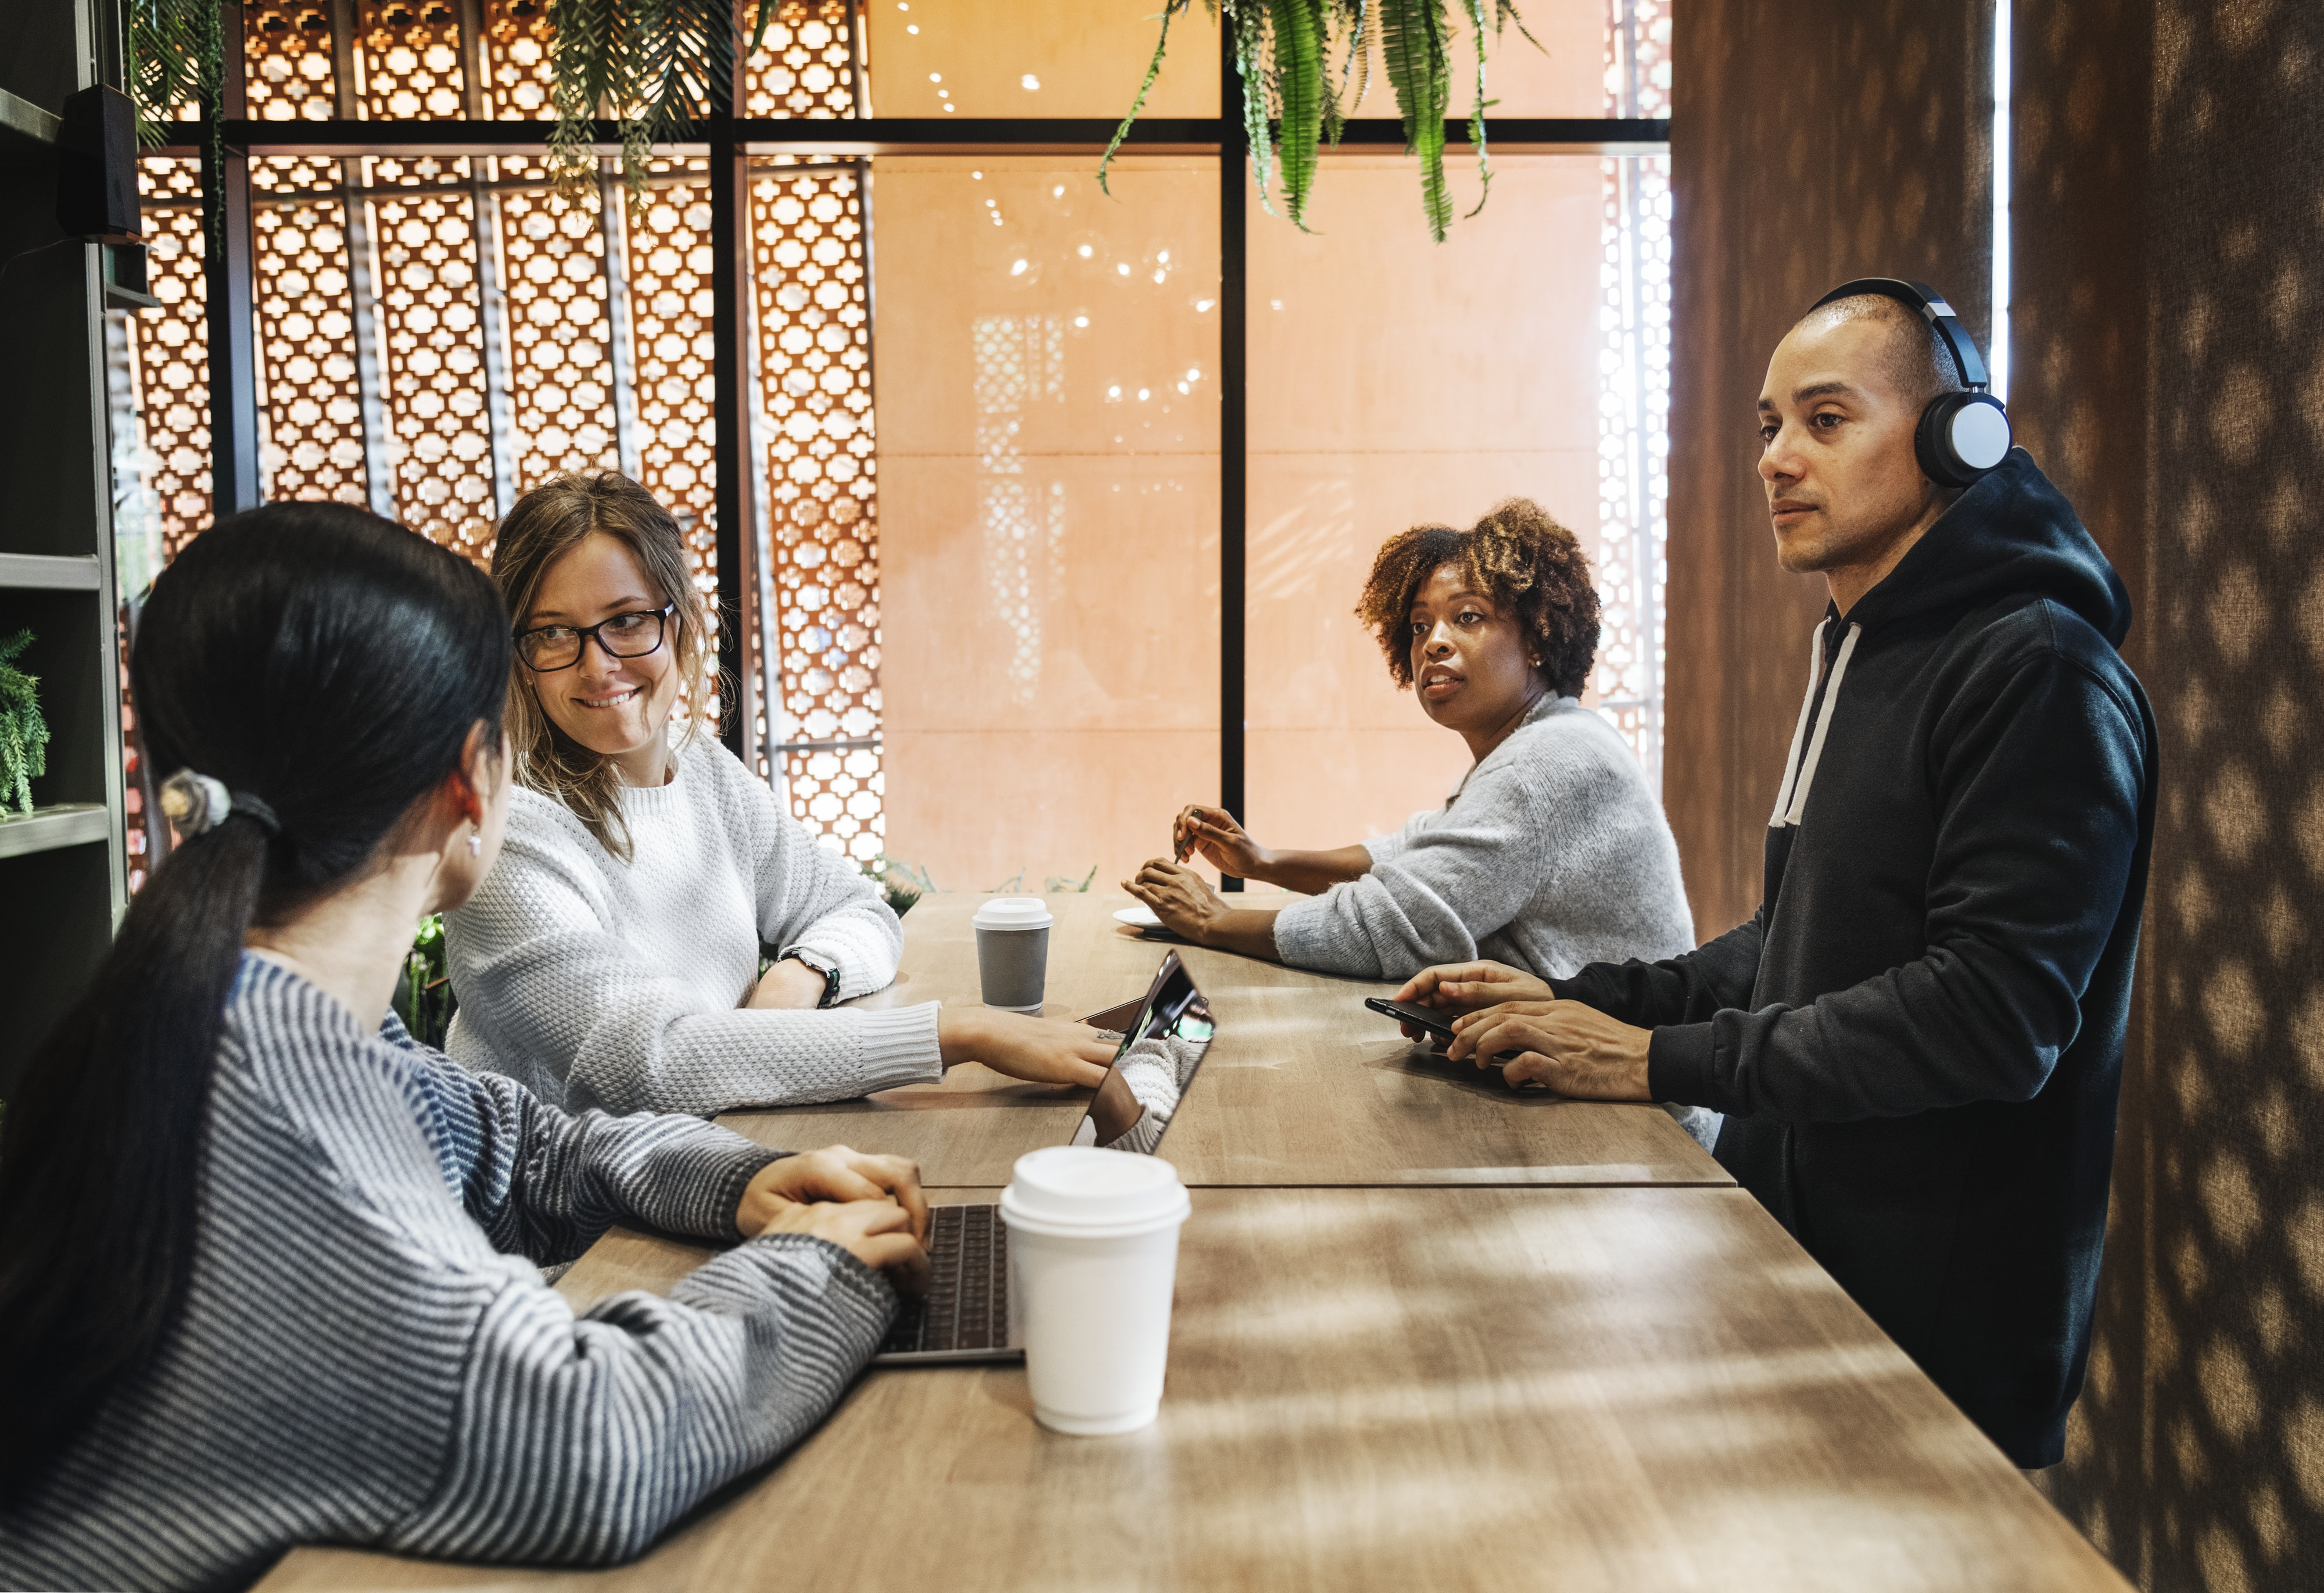 Connect with other small business owners in your community.